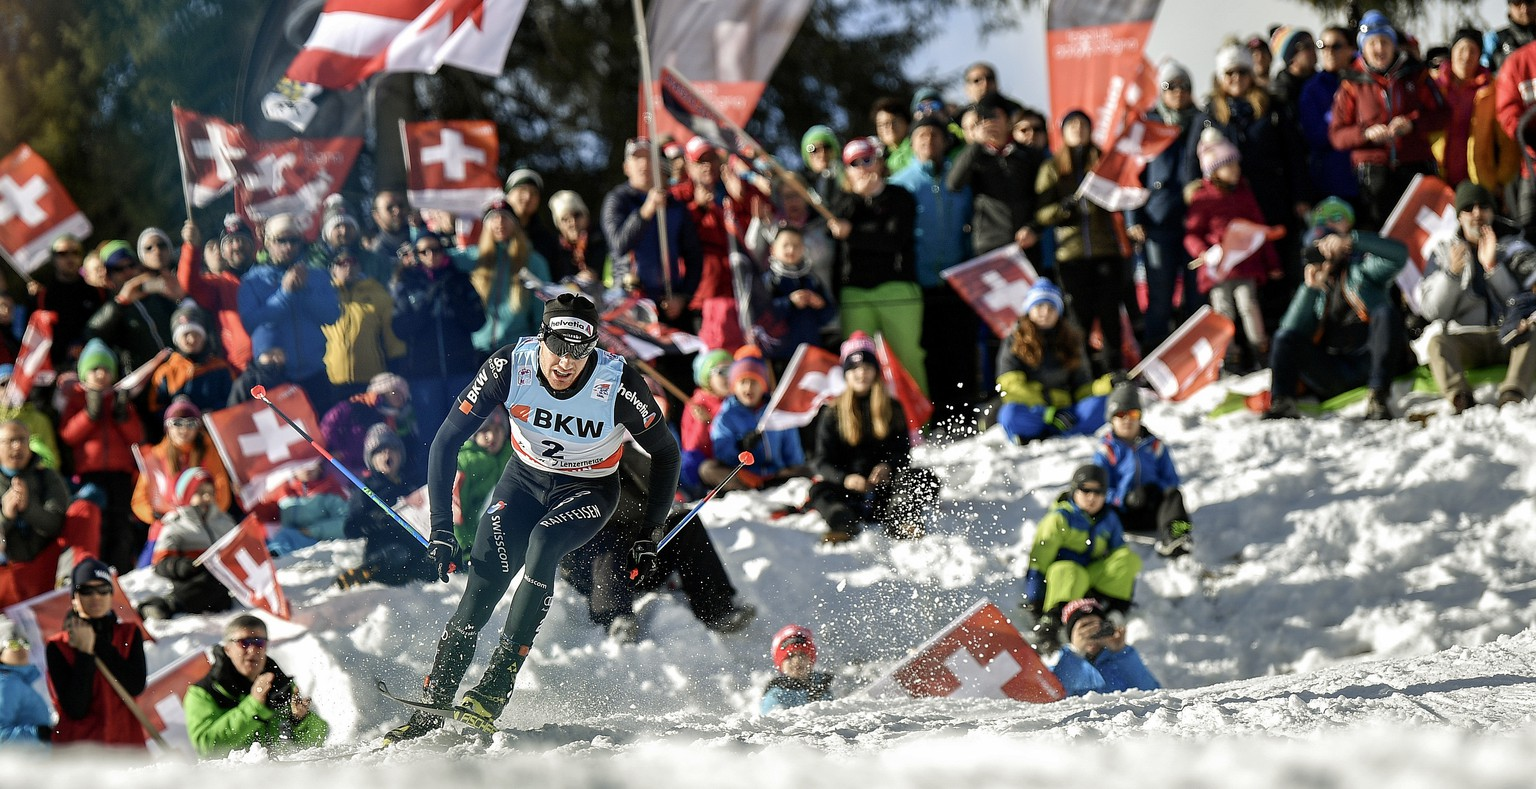 Dario Cologna of Switzerland skis to win the men's 15 kilometer cross country pursuit race at the Tour de Ski in Lenzerheide, Switzerland, Monday, Jan. 1, 2018. (Peter Schneider/Keystone via AP)